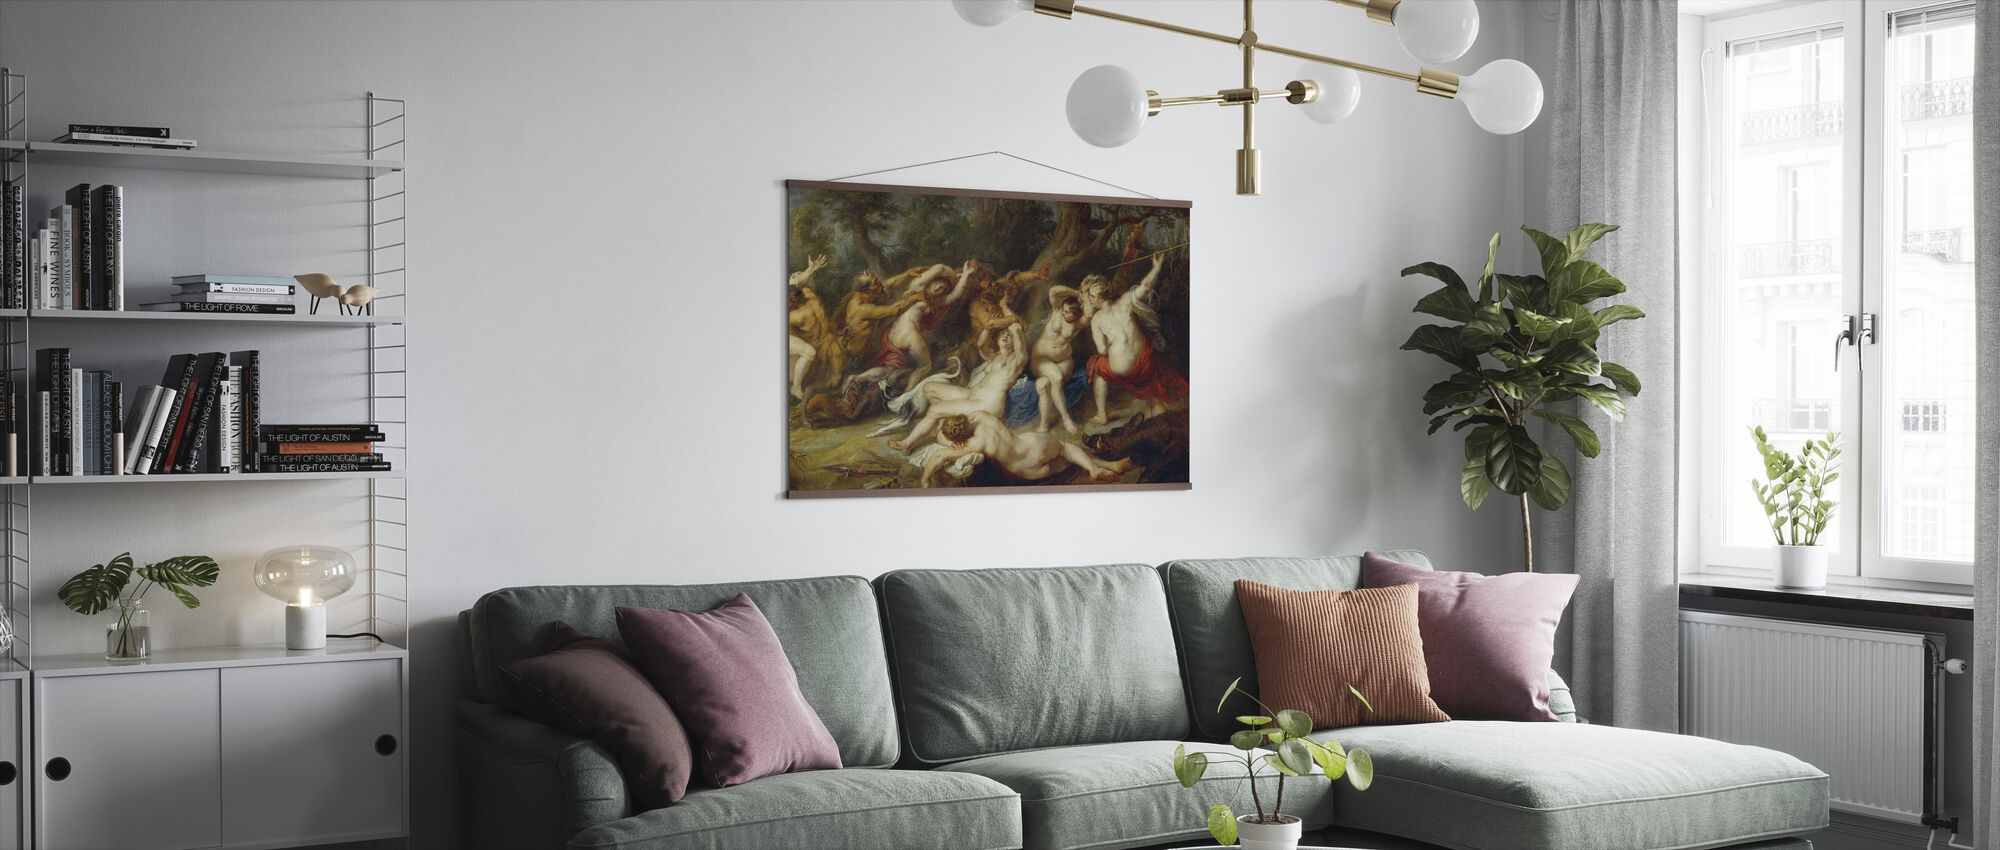 Diana and her Nymphs, Peter Paul Rubens - Poster - Living Room